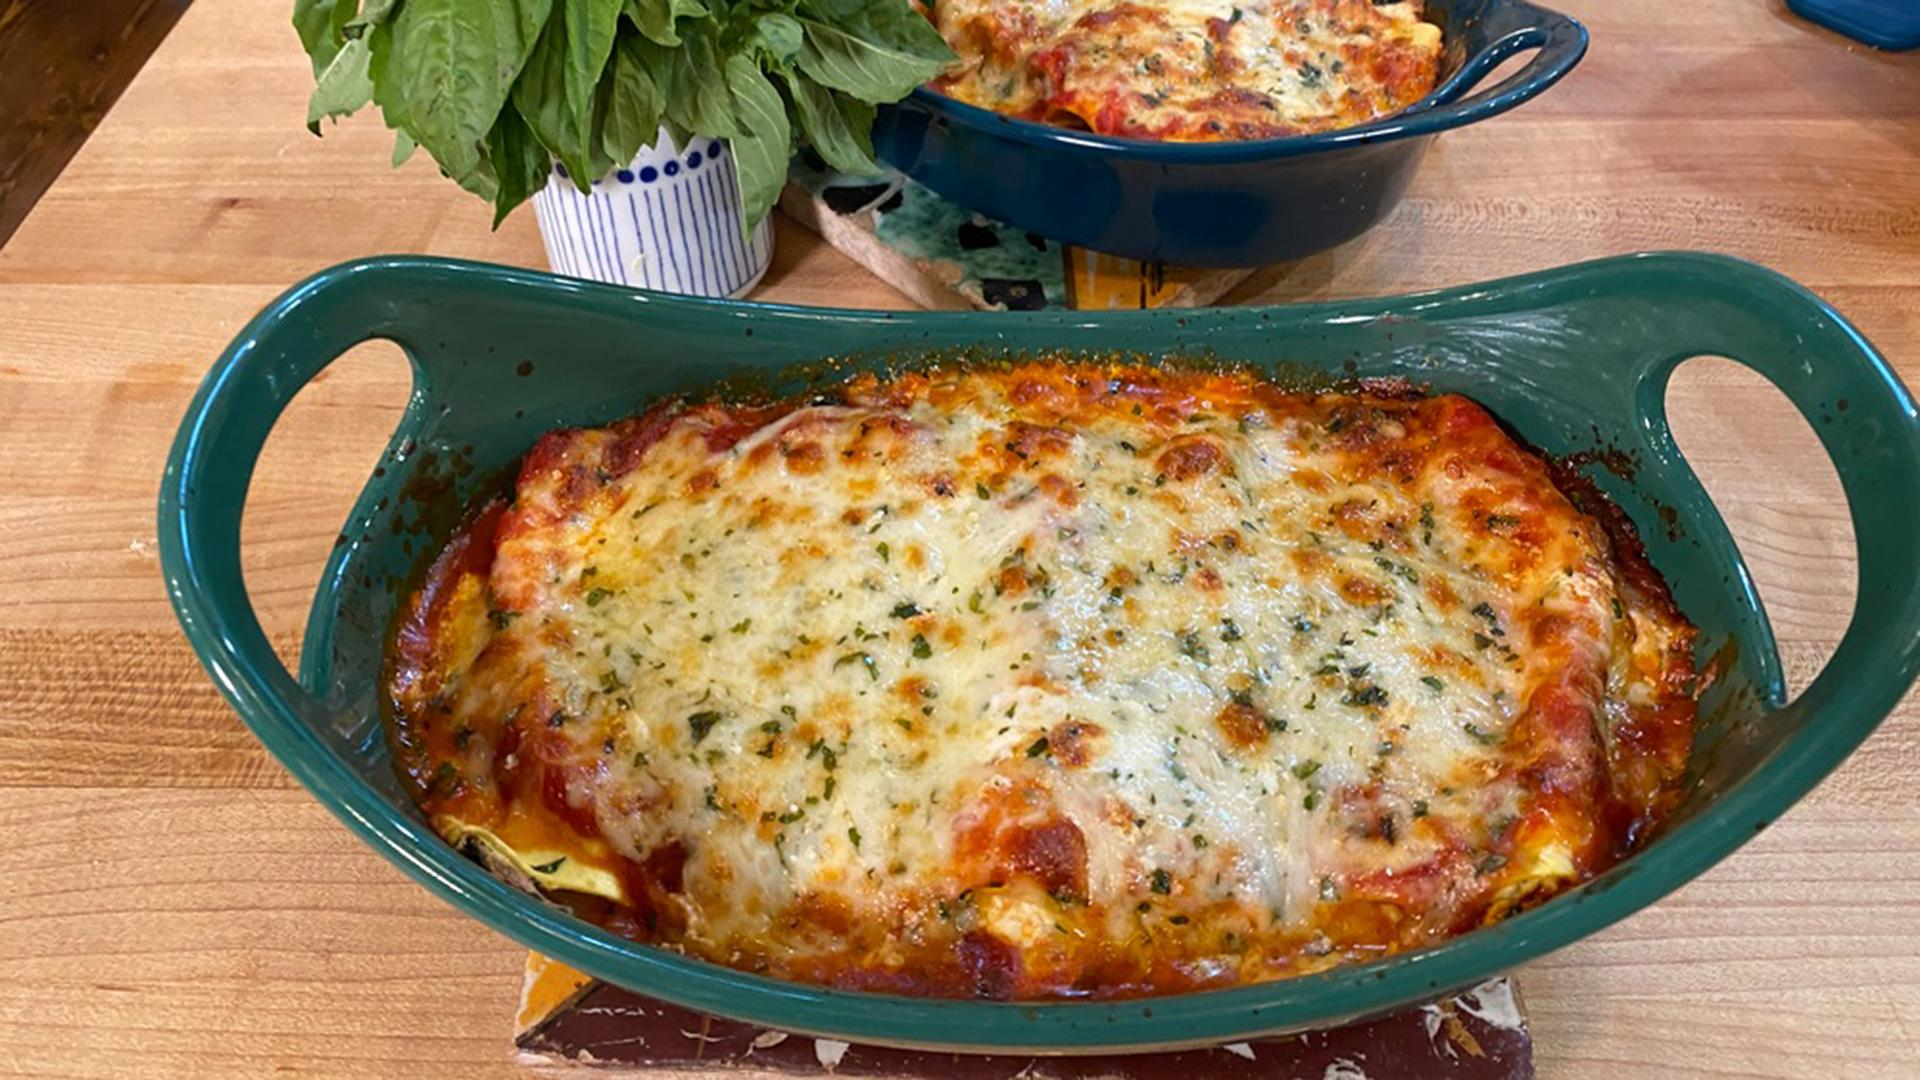 Cannelloni with Spinach & Spicy Red Sauce